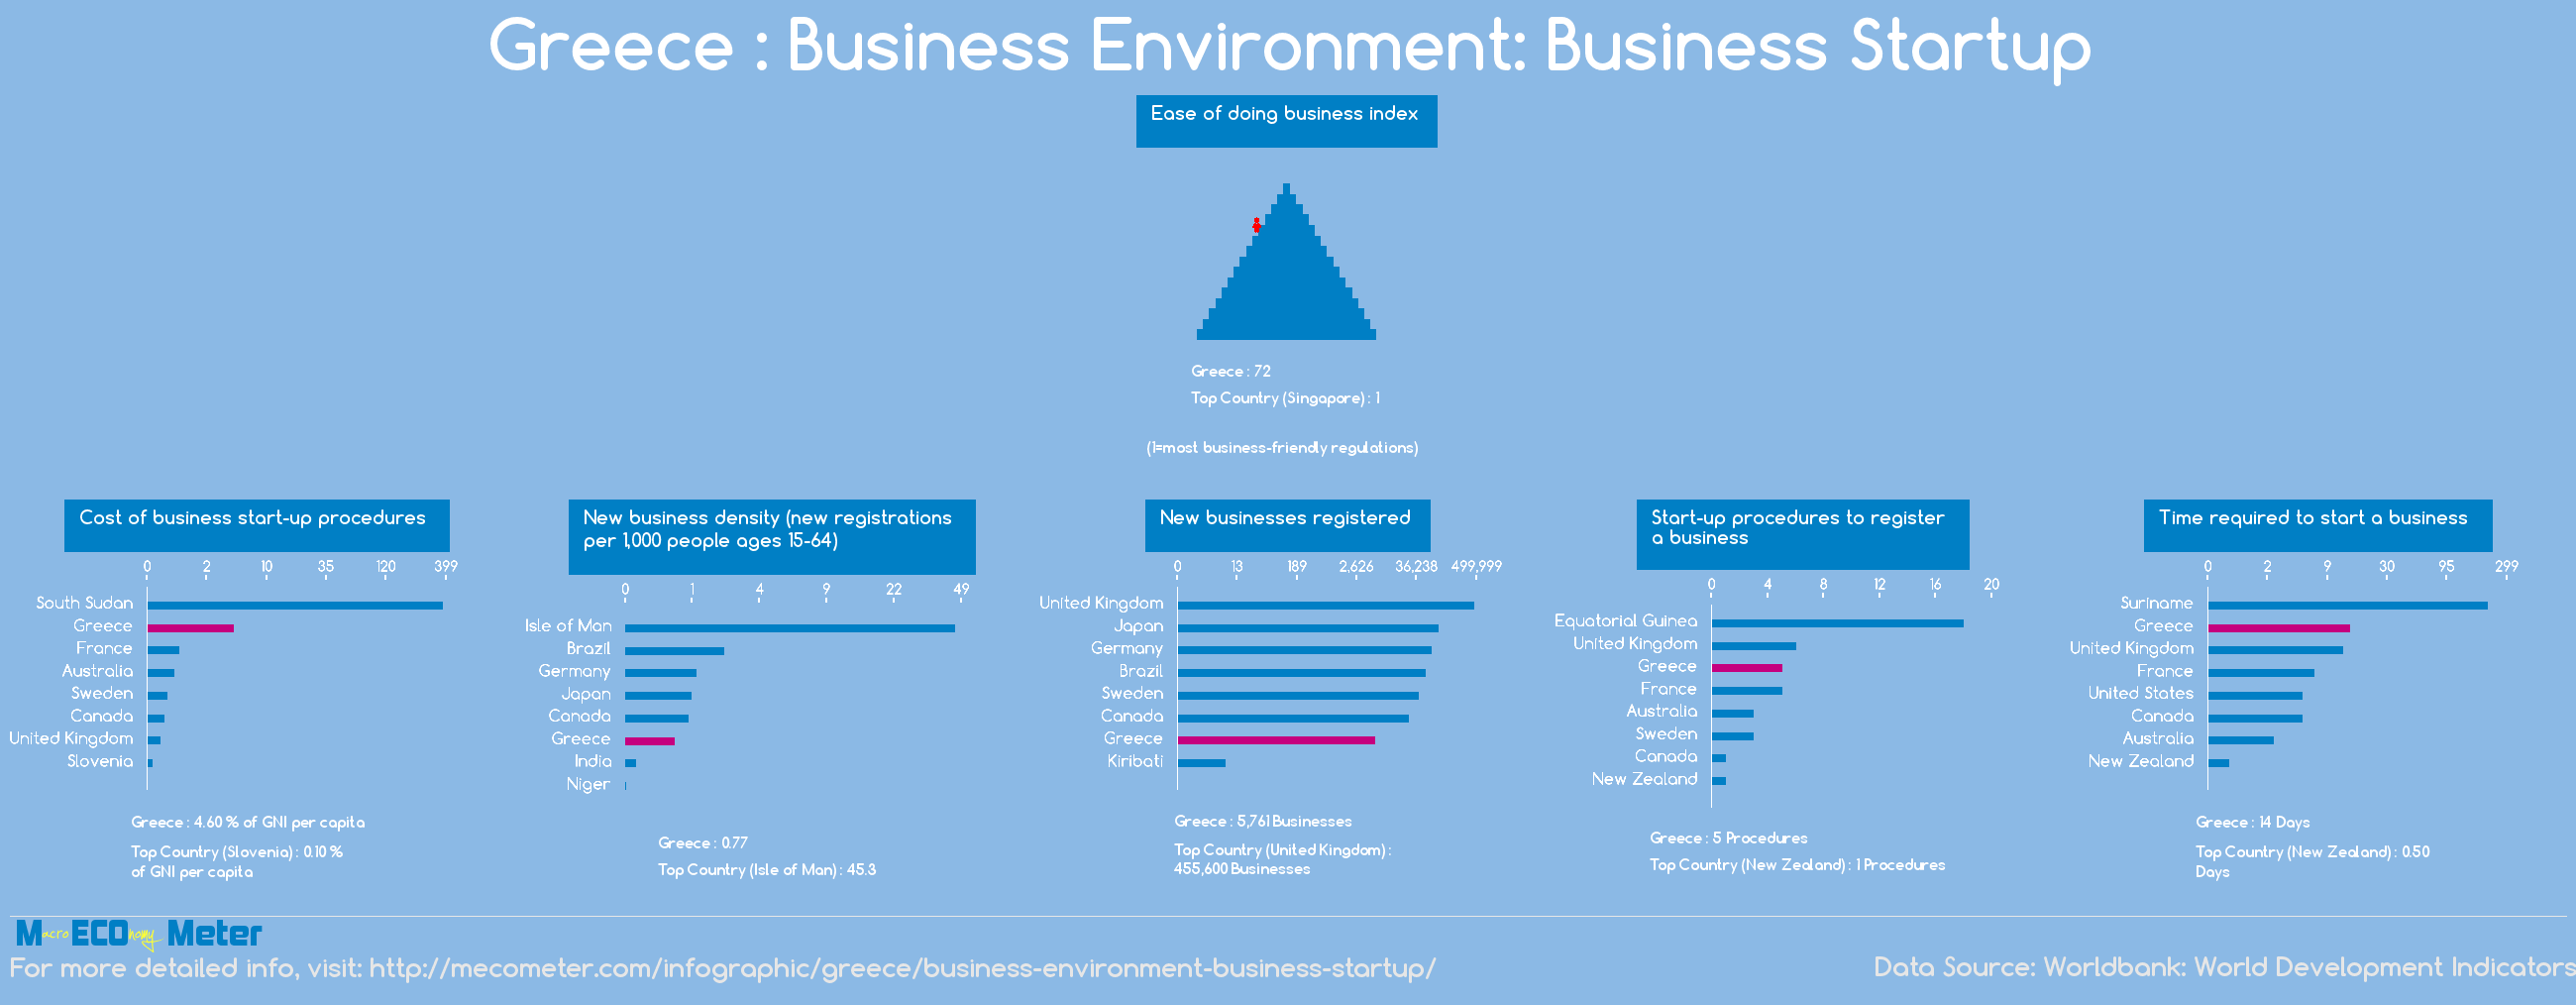 Greece : Business Environment: Business Startup